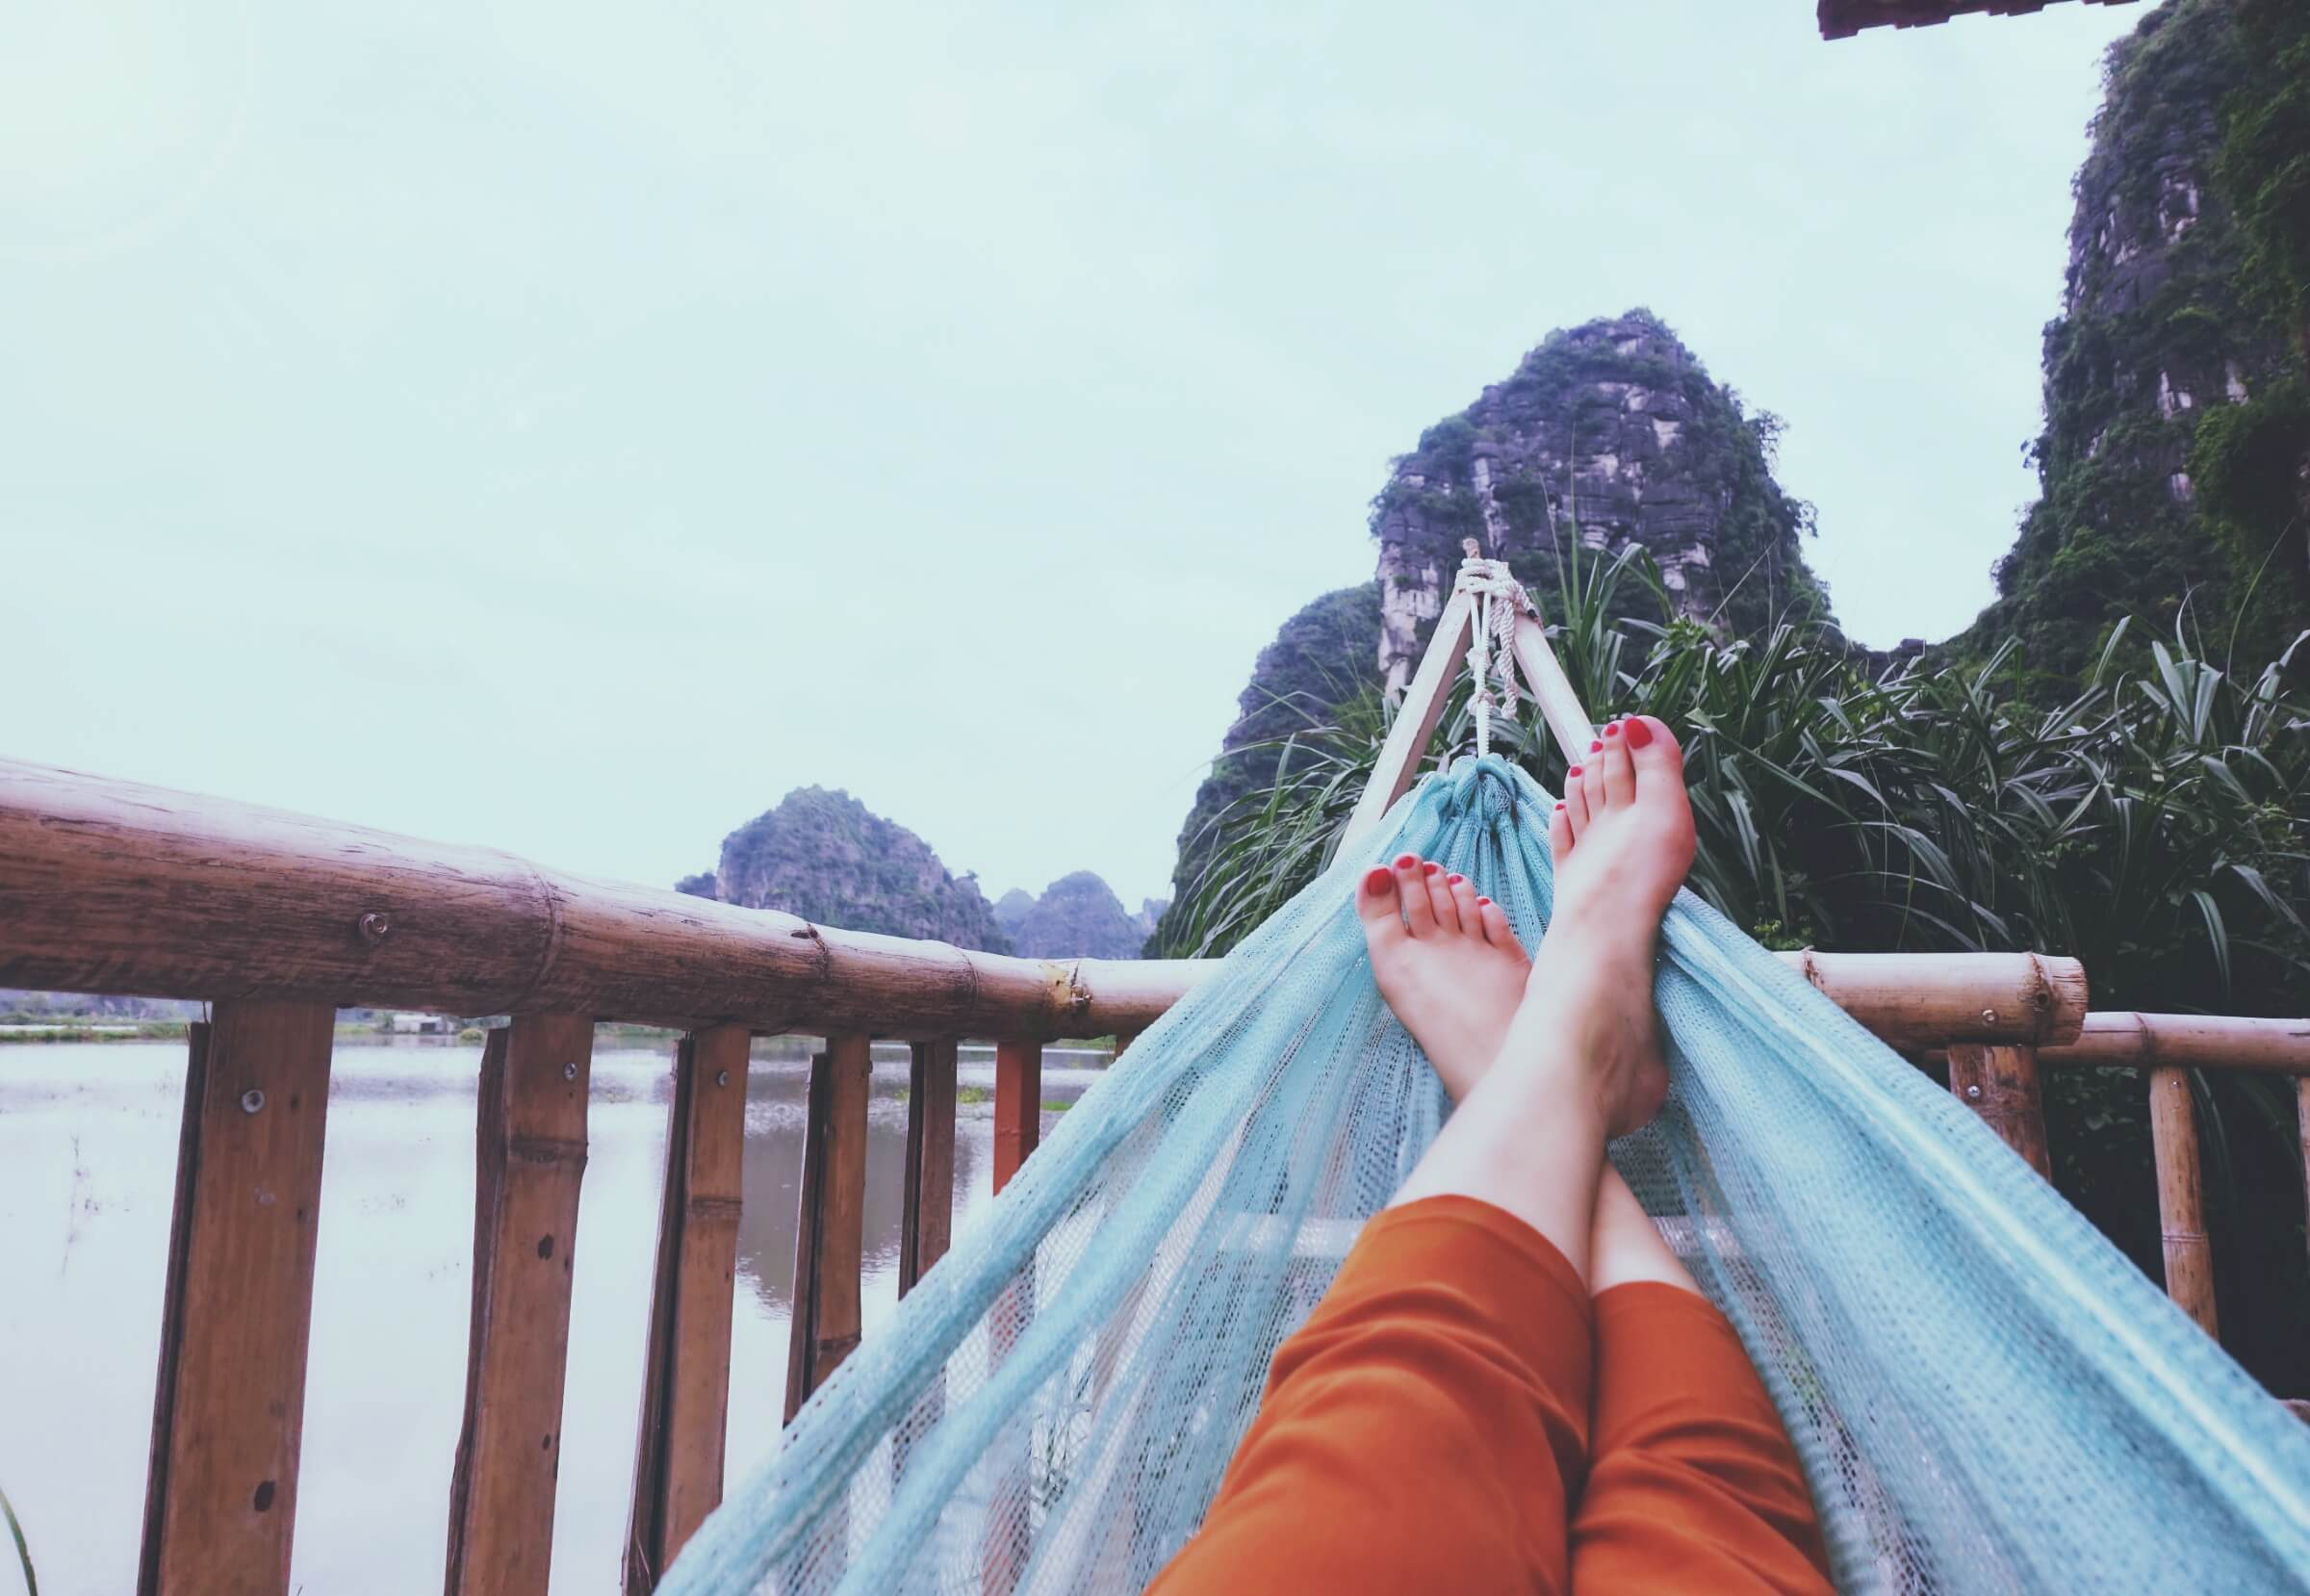 relax in a hammock -thu-giang-578263-unsplash